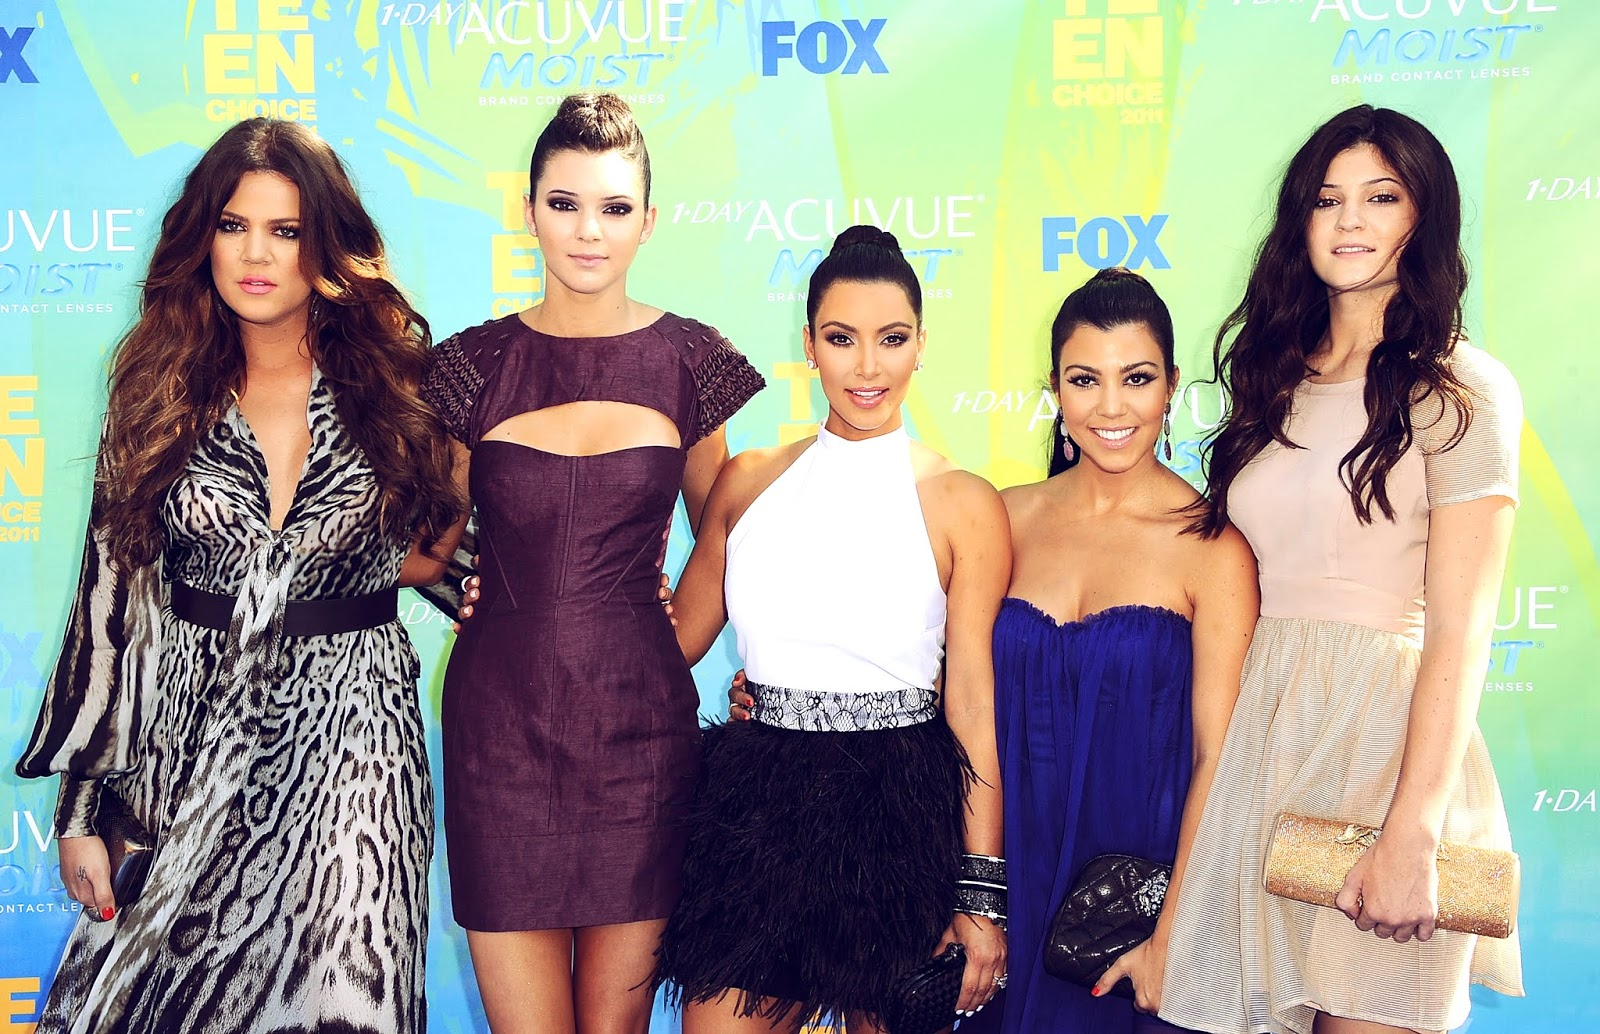 49 - Teen Choice Awards in August 11, 2011